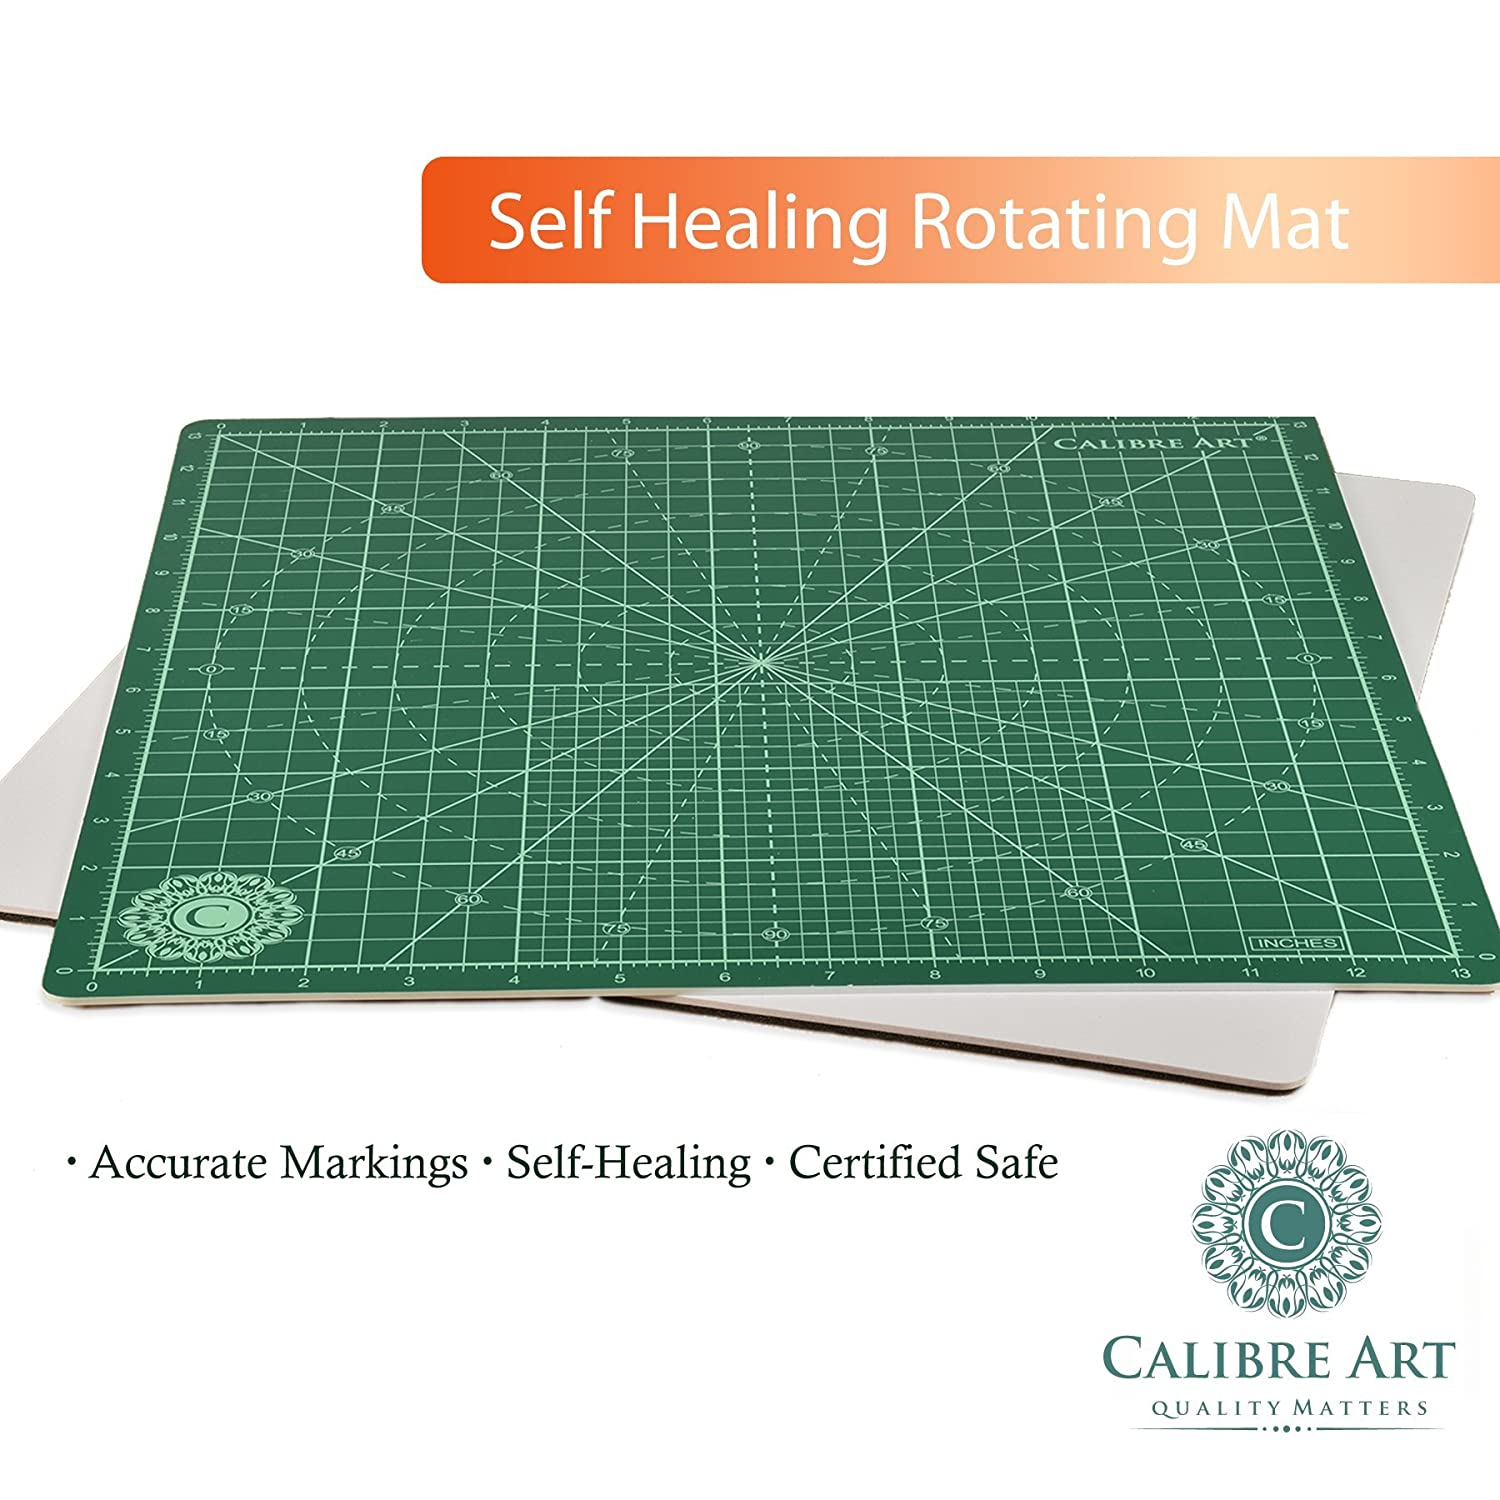 cutting fabric diy com craft tools dhgate sided double gunsamg pvc self mat healing product from paper leather board